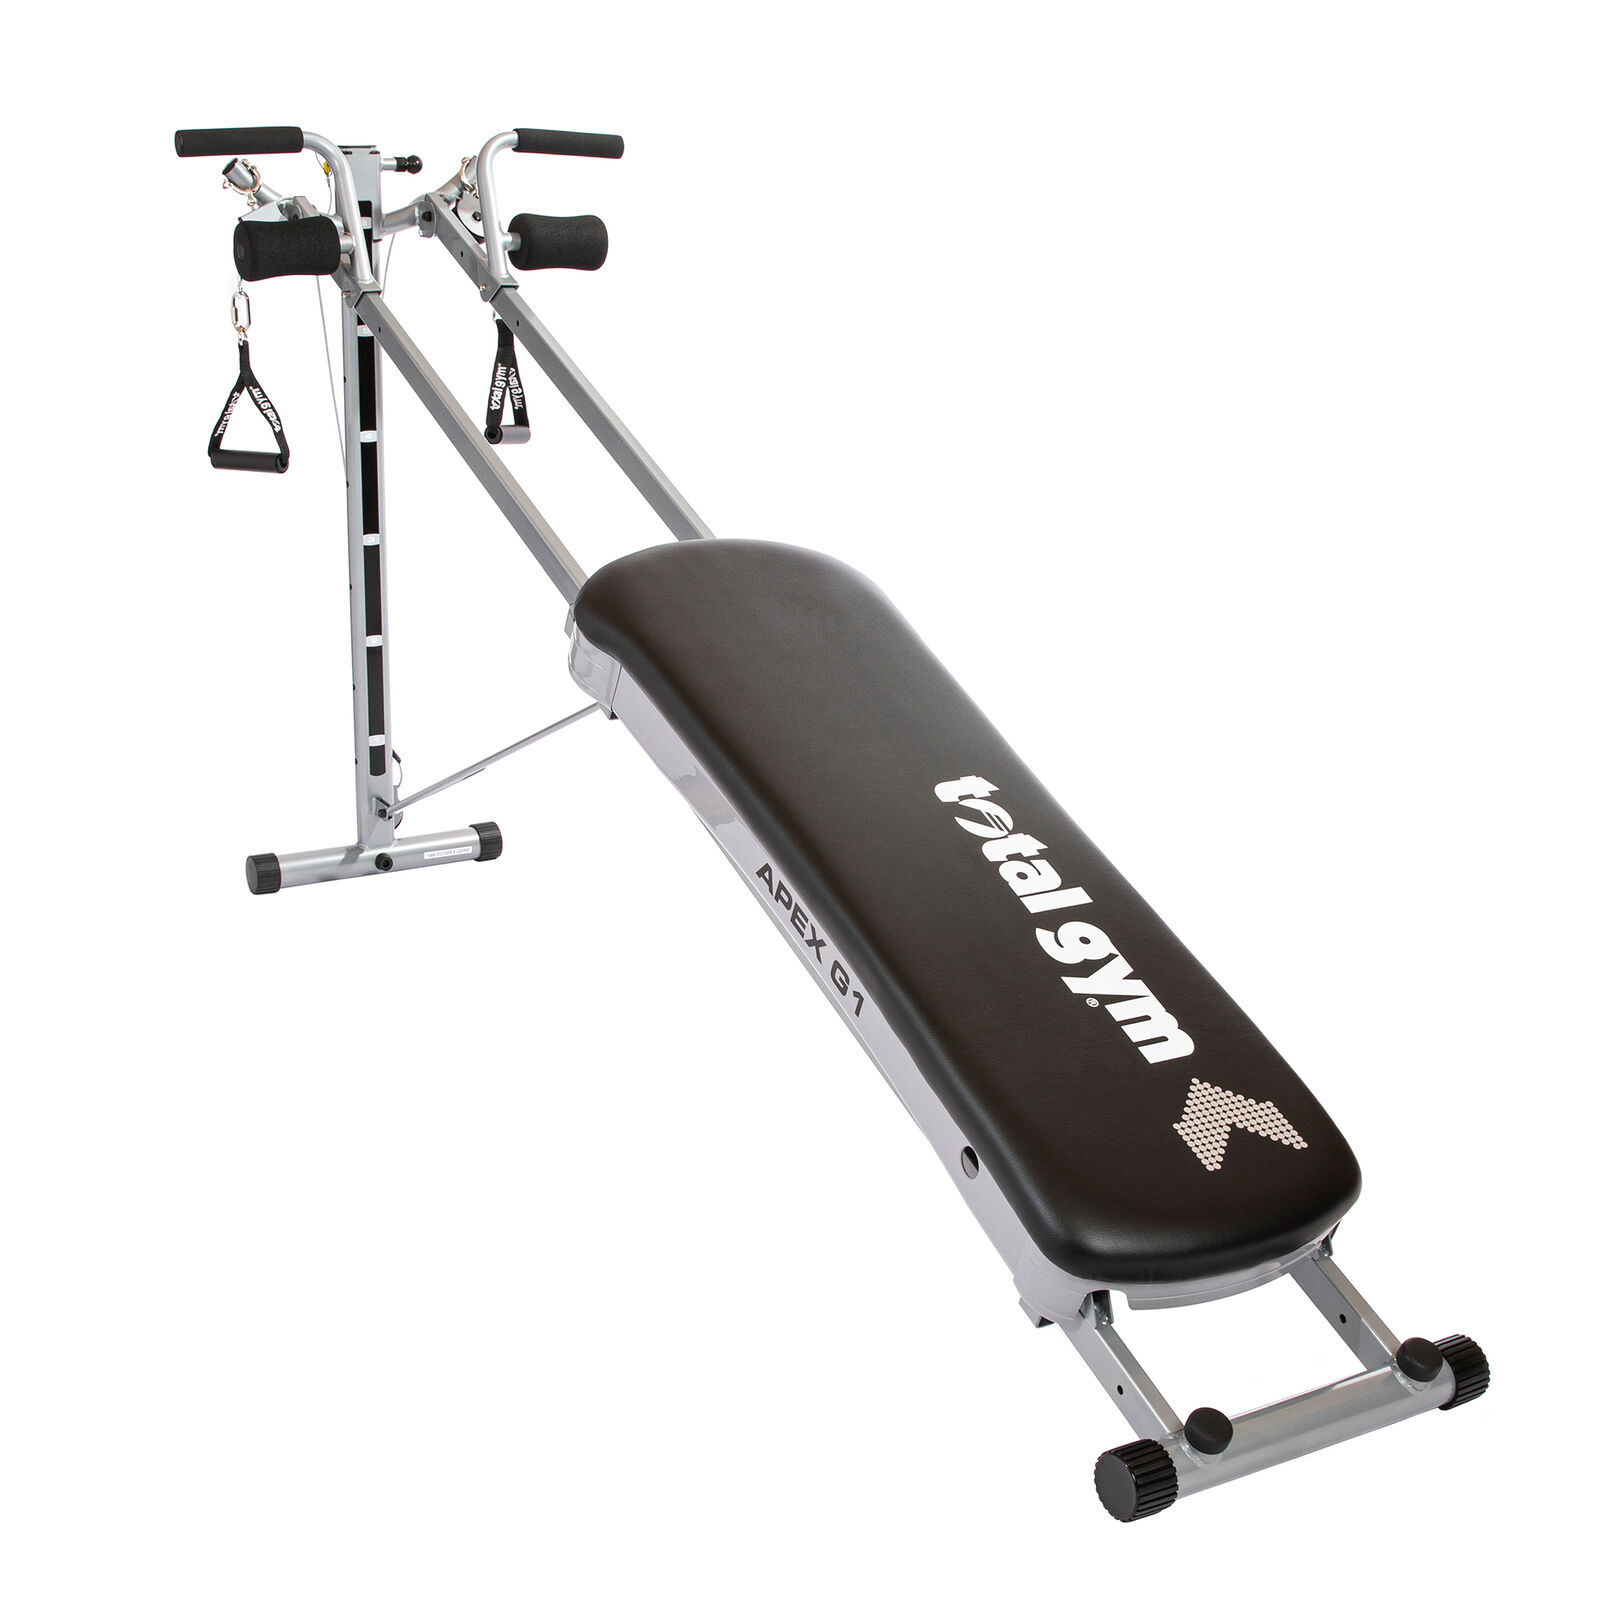 Total Gym Fitness – Incline Weight Training w/ 6 Resistance Levels (Open Box)